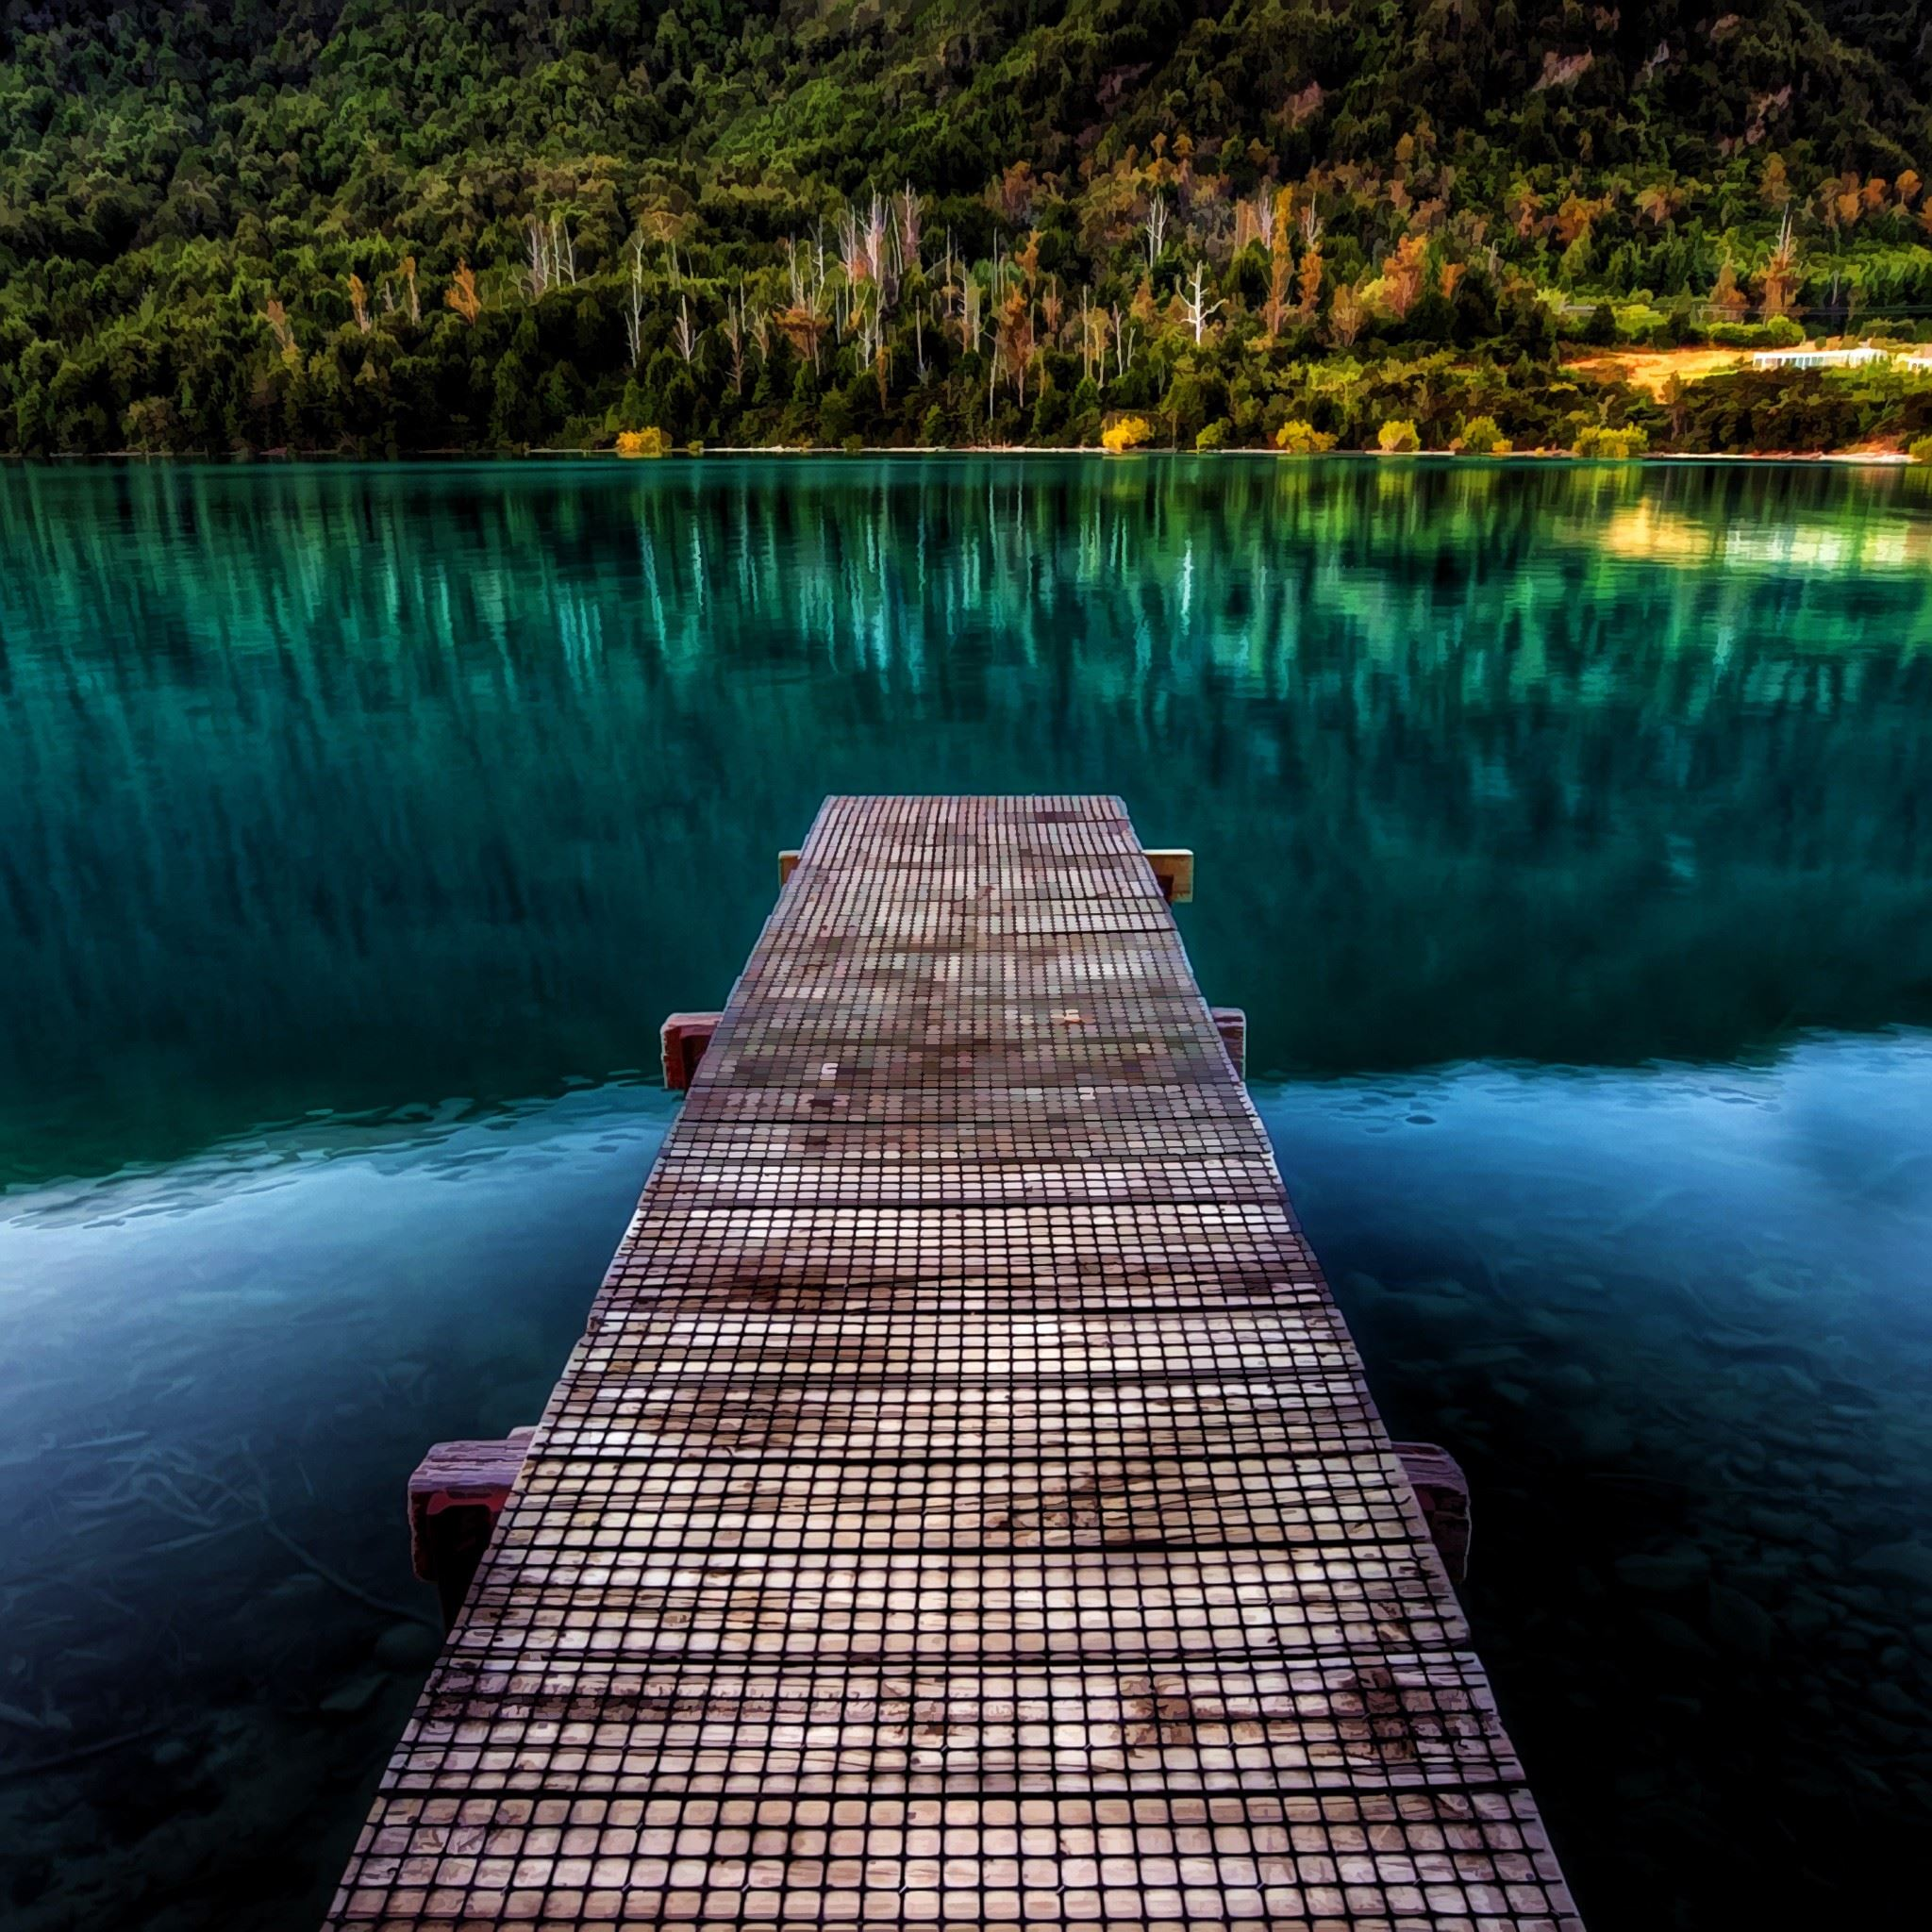 Old Iphone Wallpapers: Pure Beautiful Calm Lake Wooden Bridge IPad Air Wallpaper